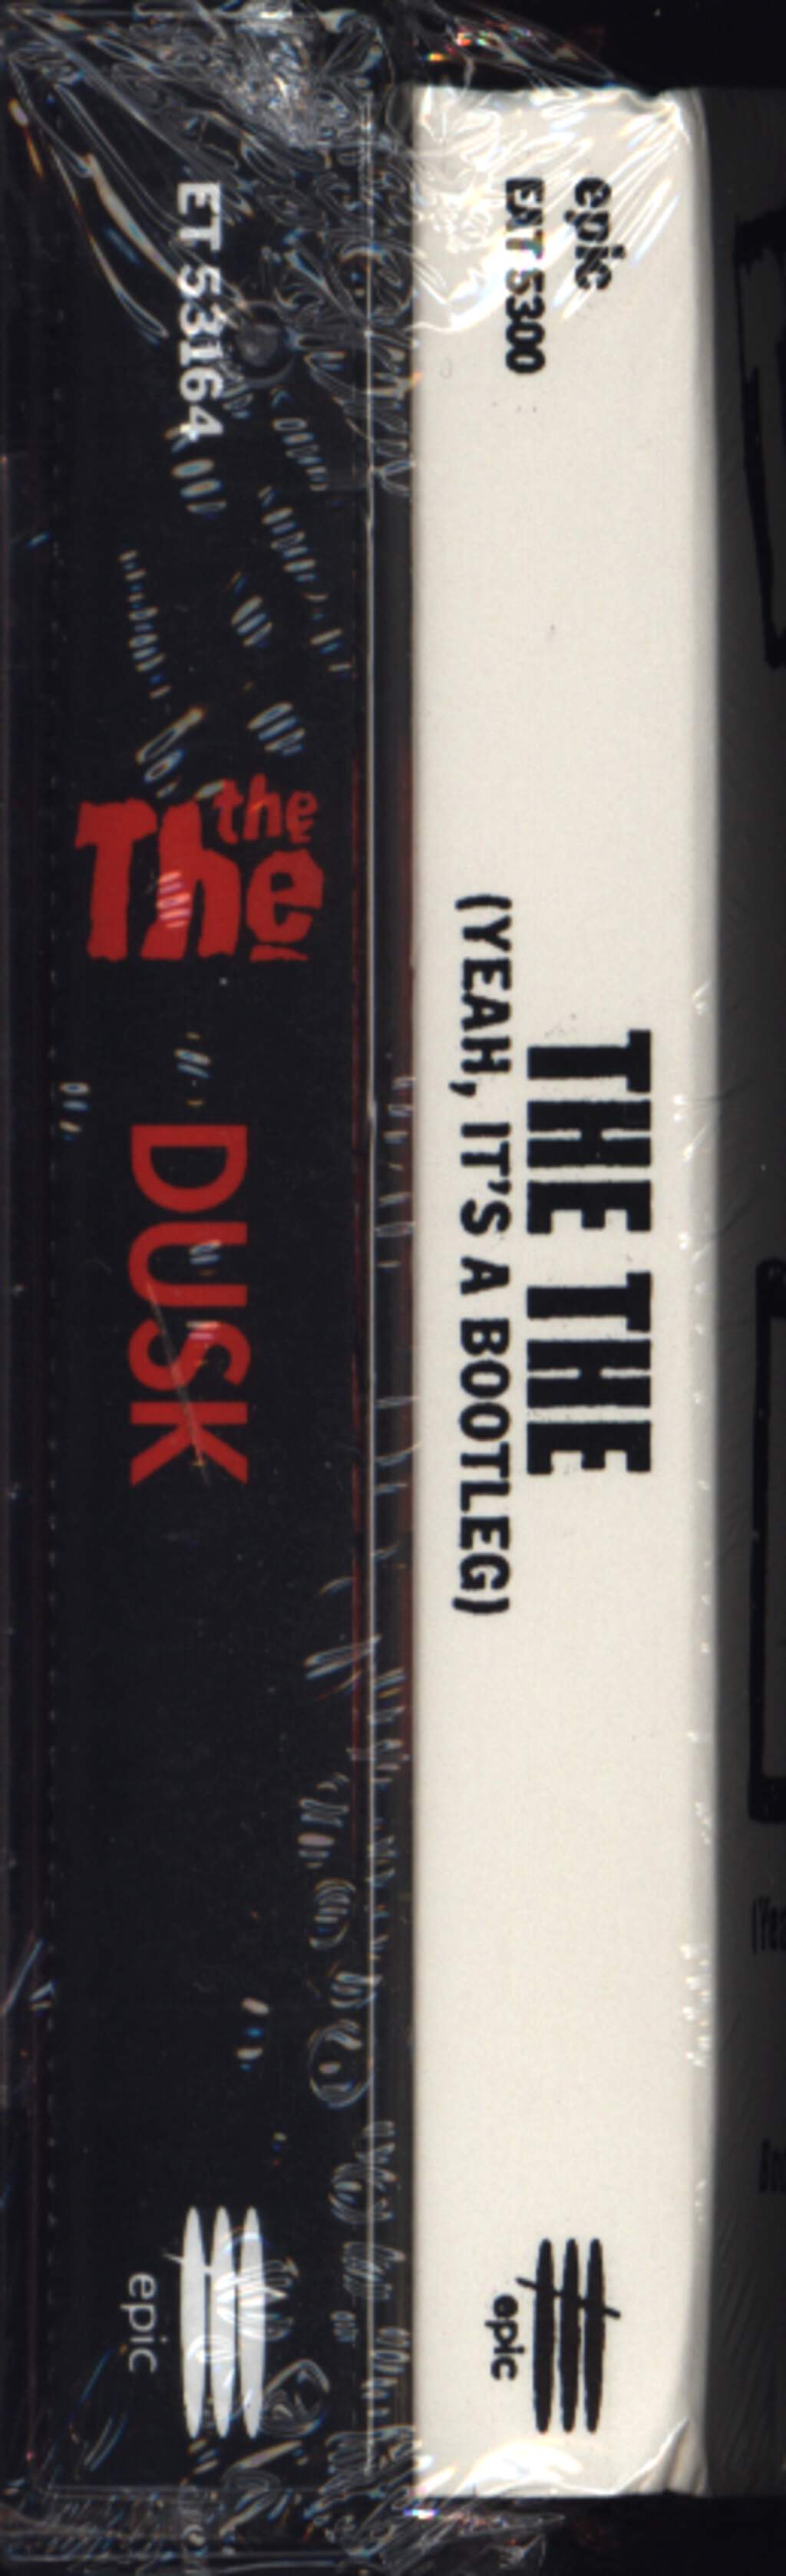 The the: Dusk & Live In New York (Yeah, It's A Bootleg), Compact Cassette